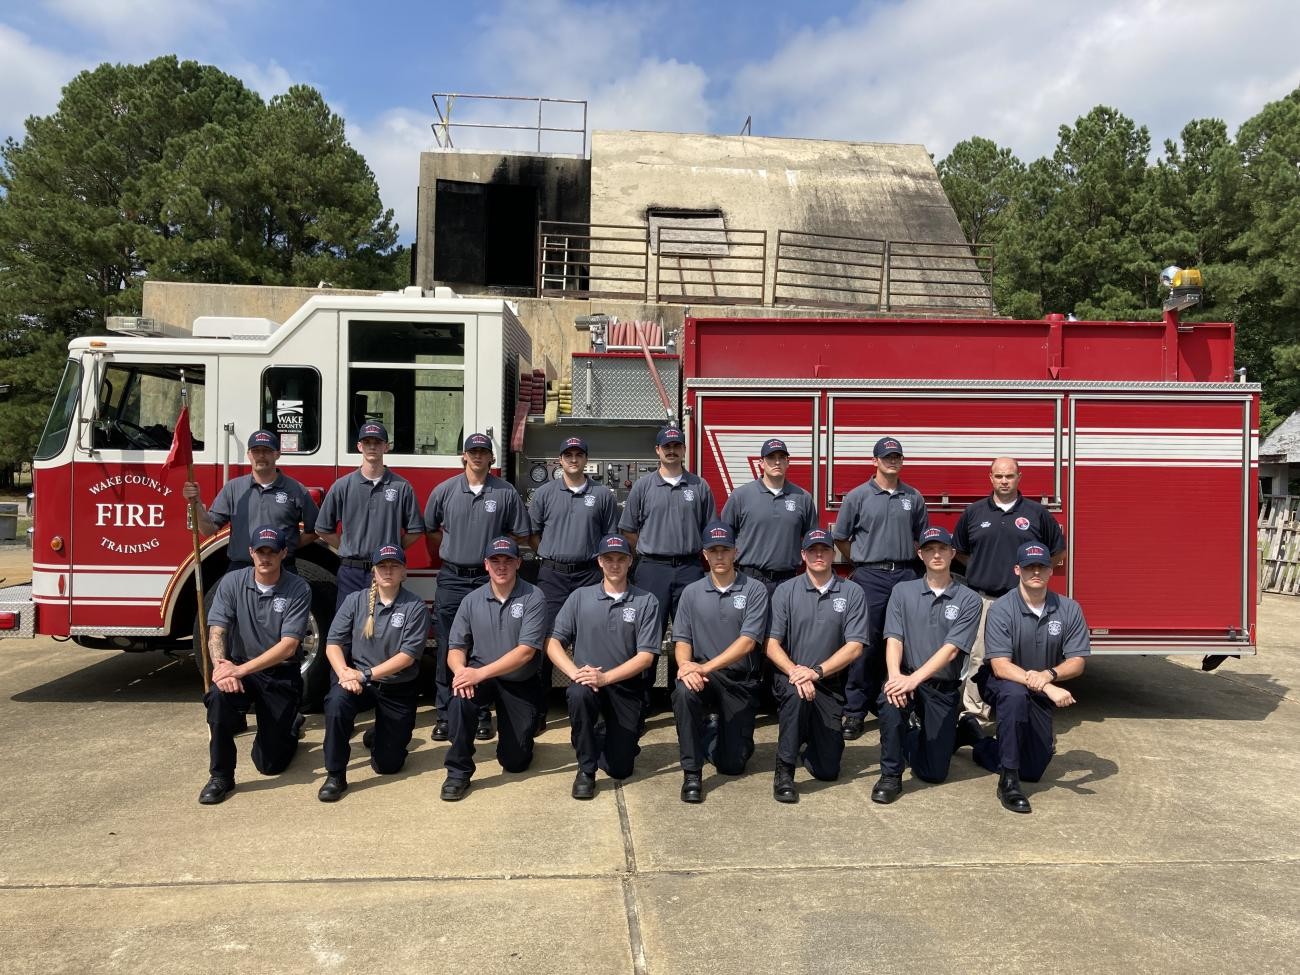 Wake County Fire Academy 13 recruits post in front of a fire truck